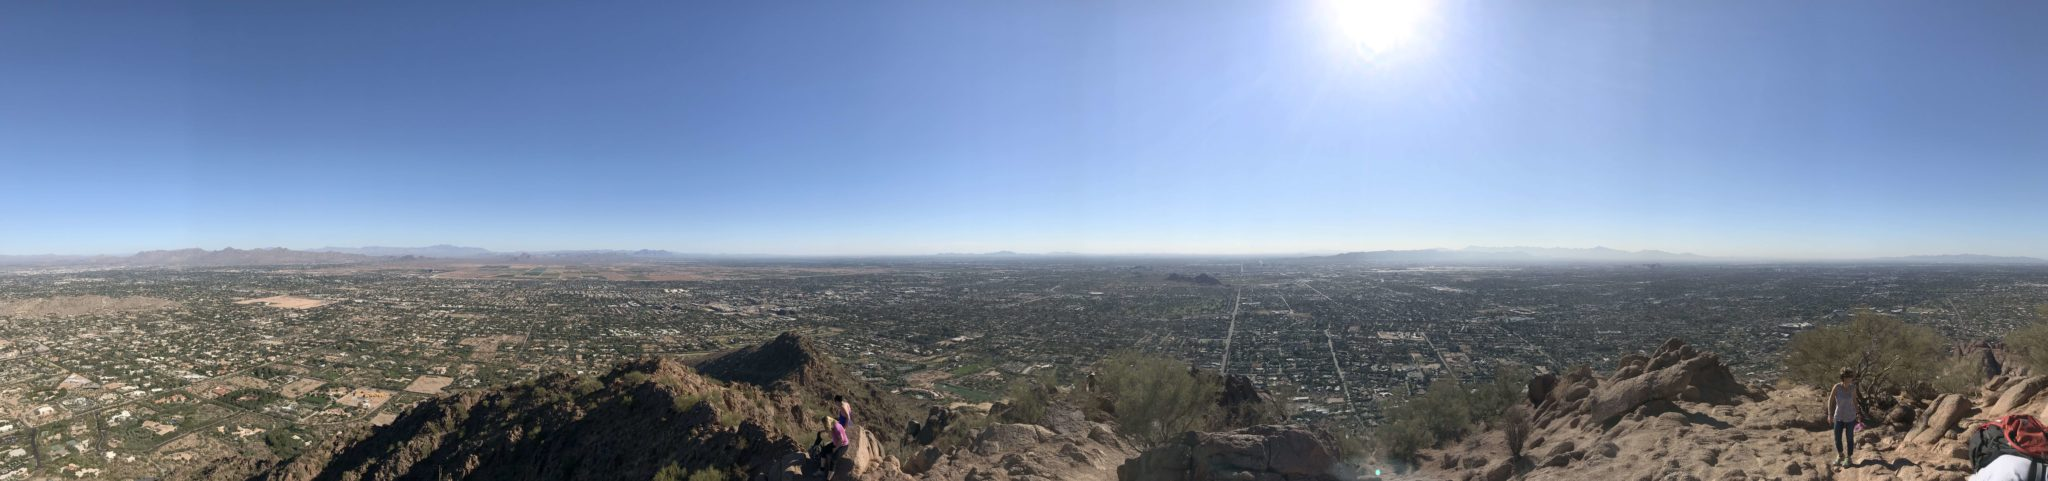 View of the Valley from Camelback